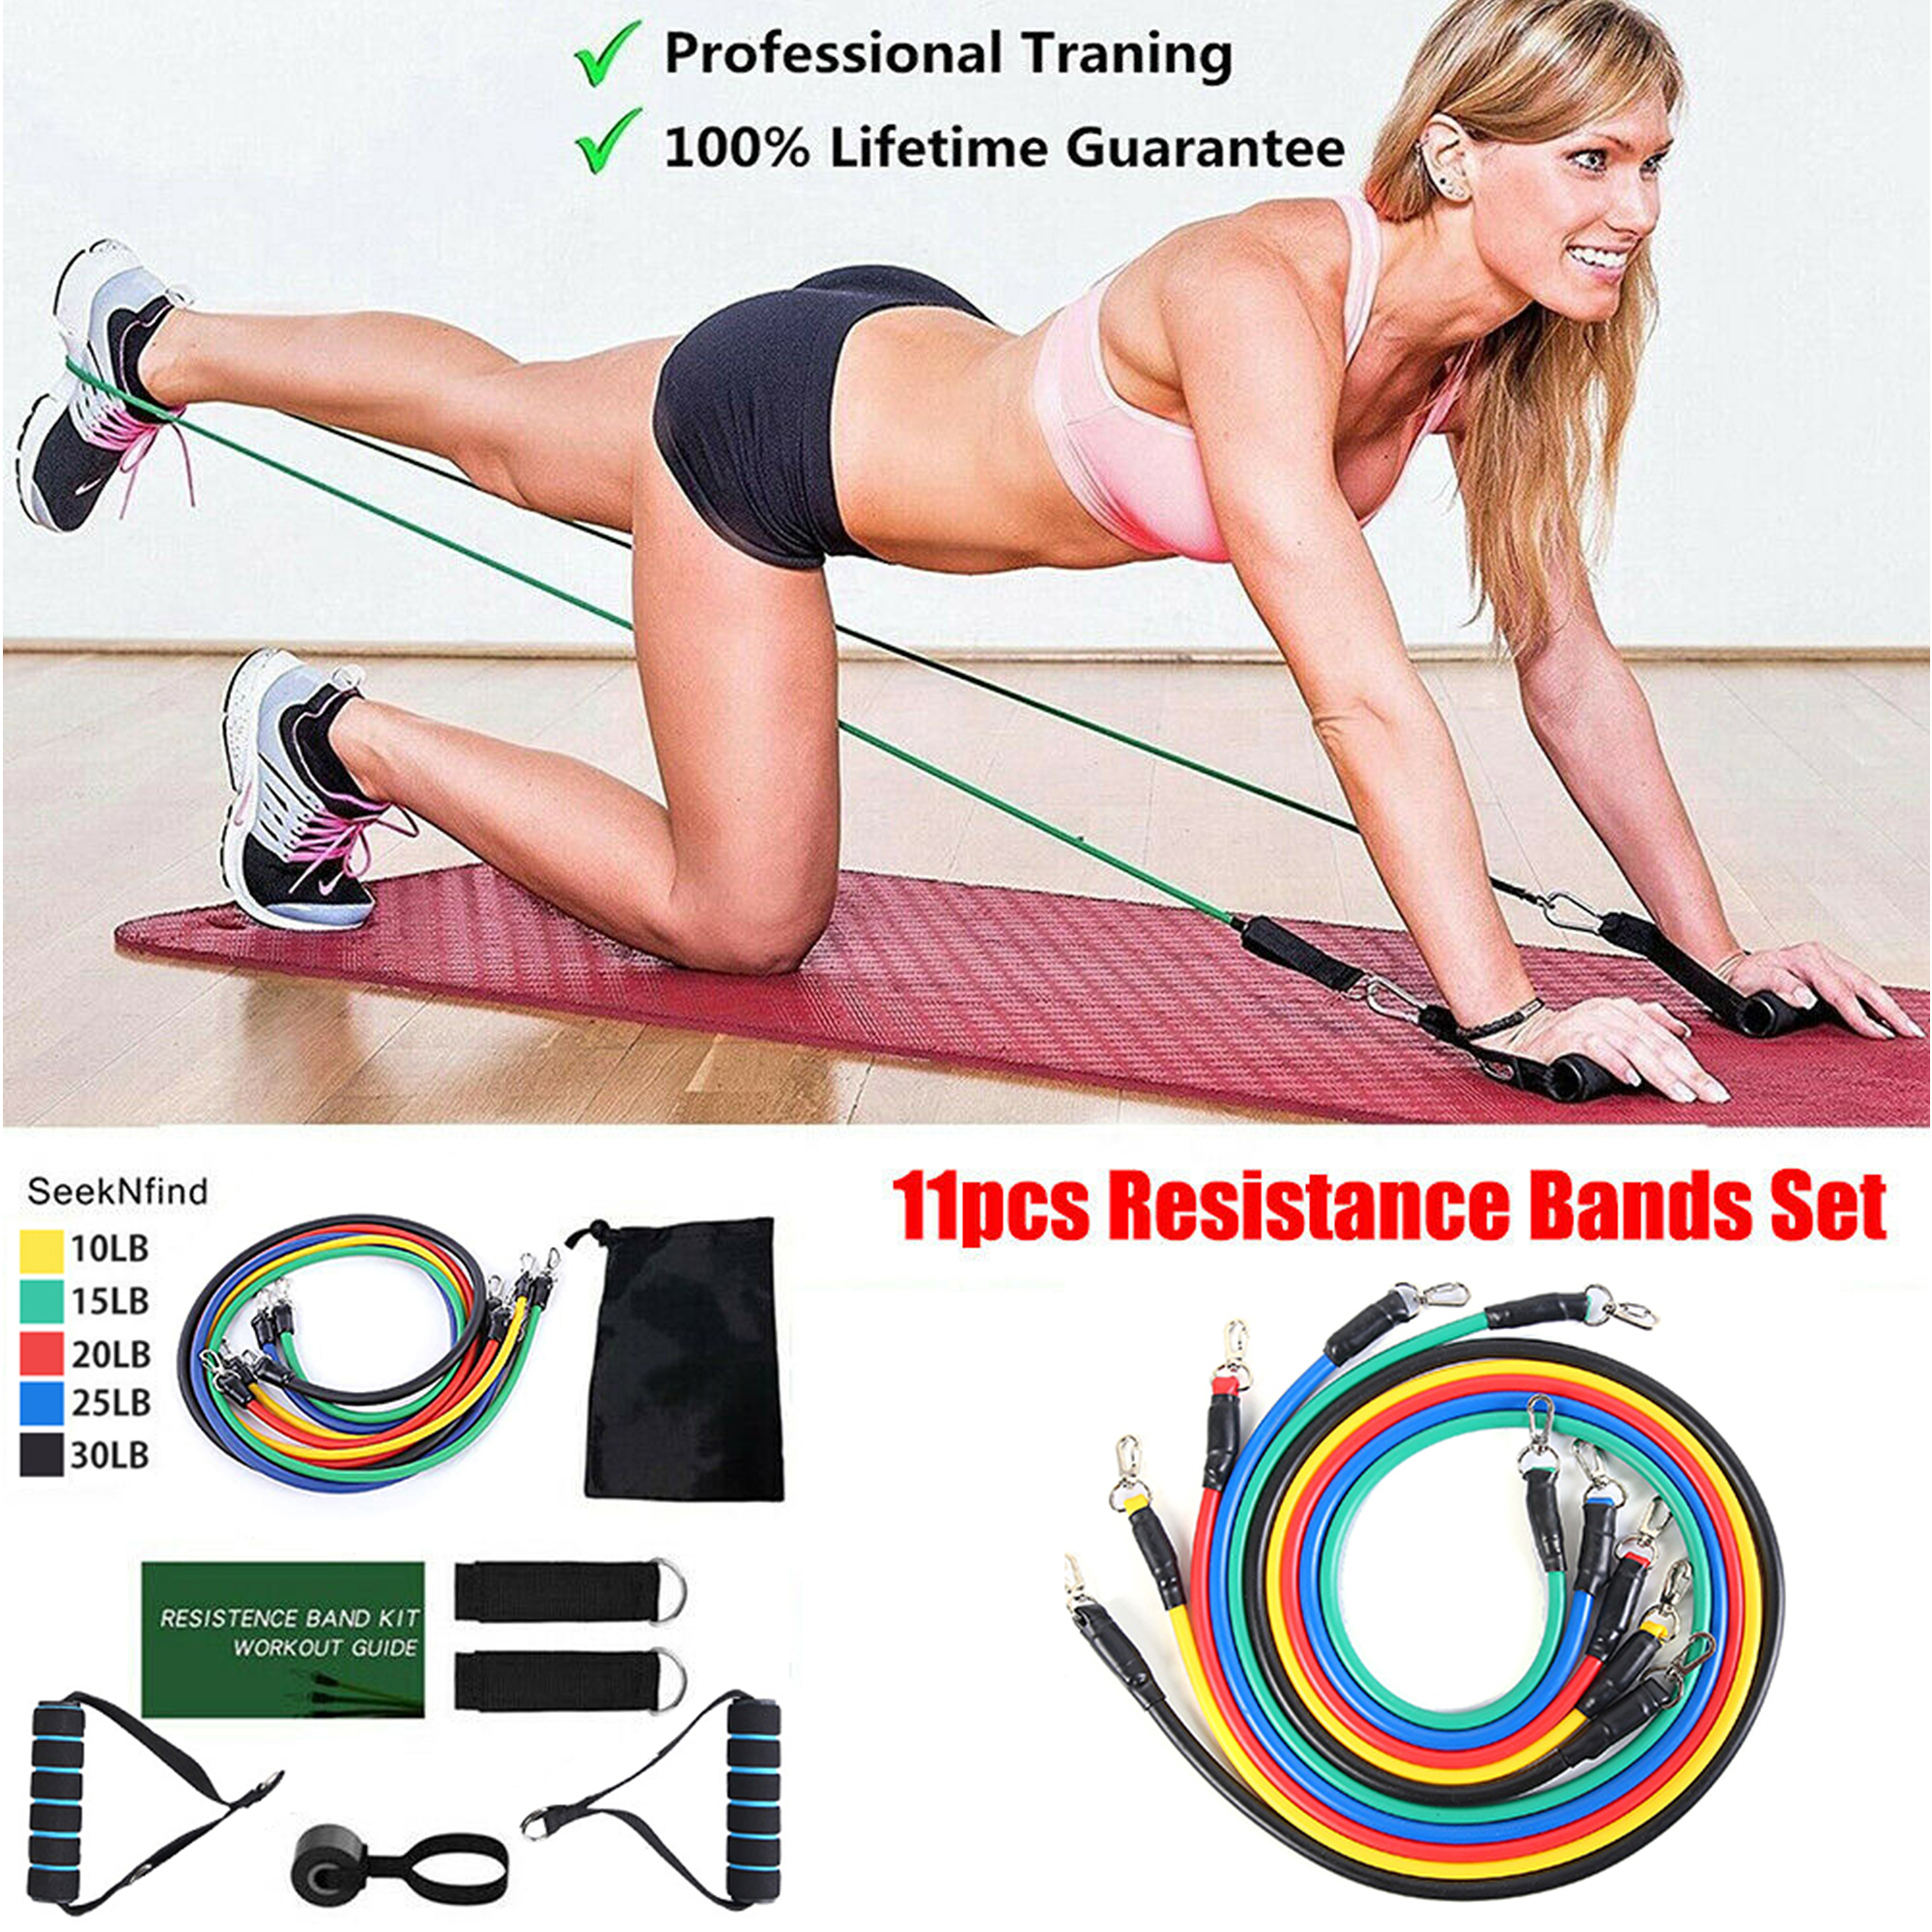 Details about  /11pcs Elastic Exercise Bands Set with Handles Door Anchor Workout Bands Gym